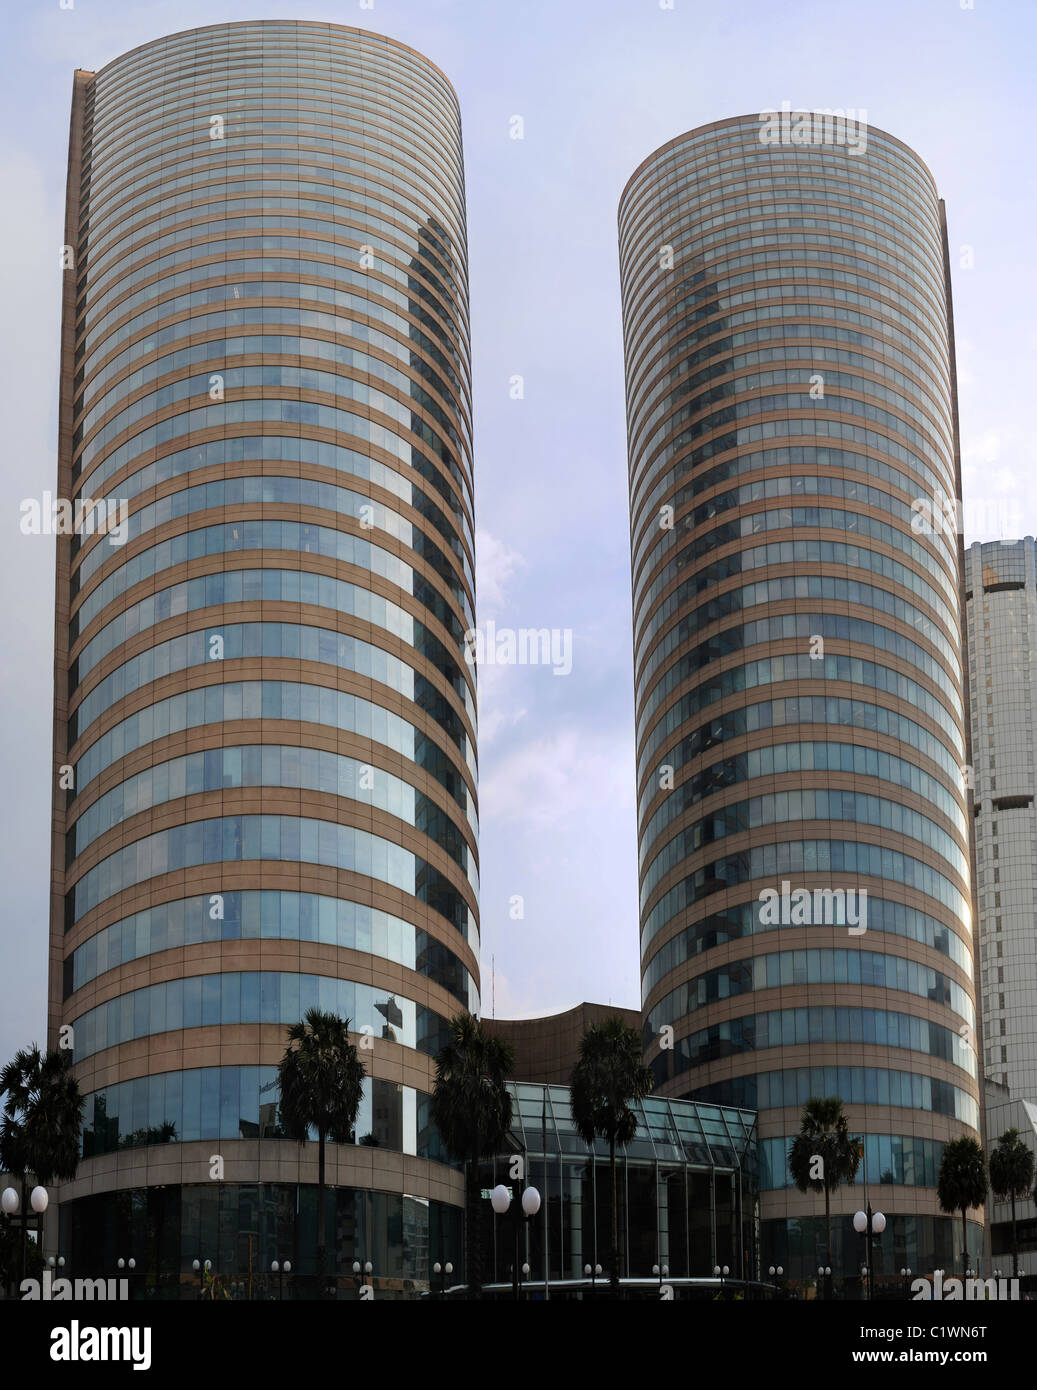 The World Trade Centre (also known as World Trade Centre  or WTCC) is the tallest completed building in Sri Lanka - Stock Image